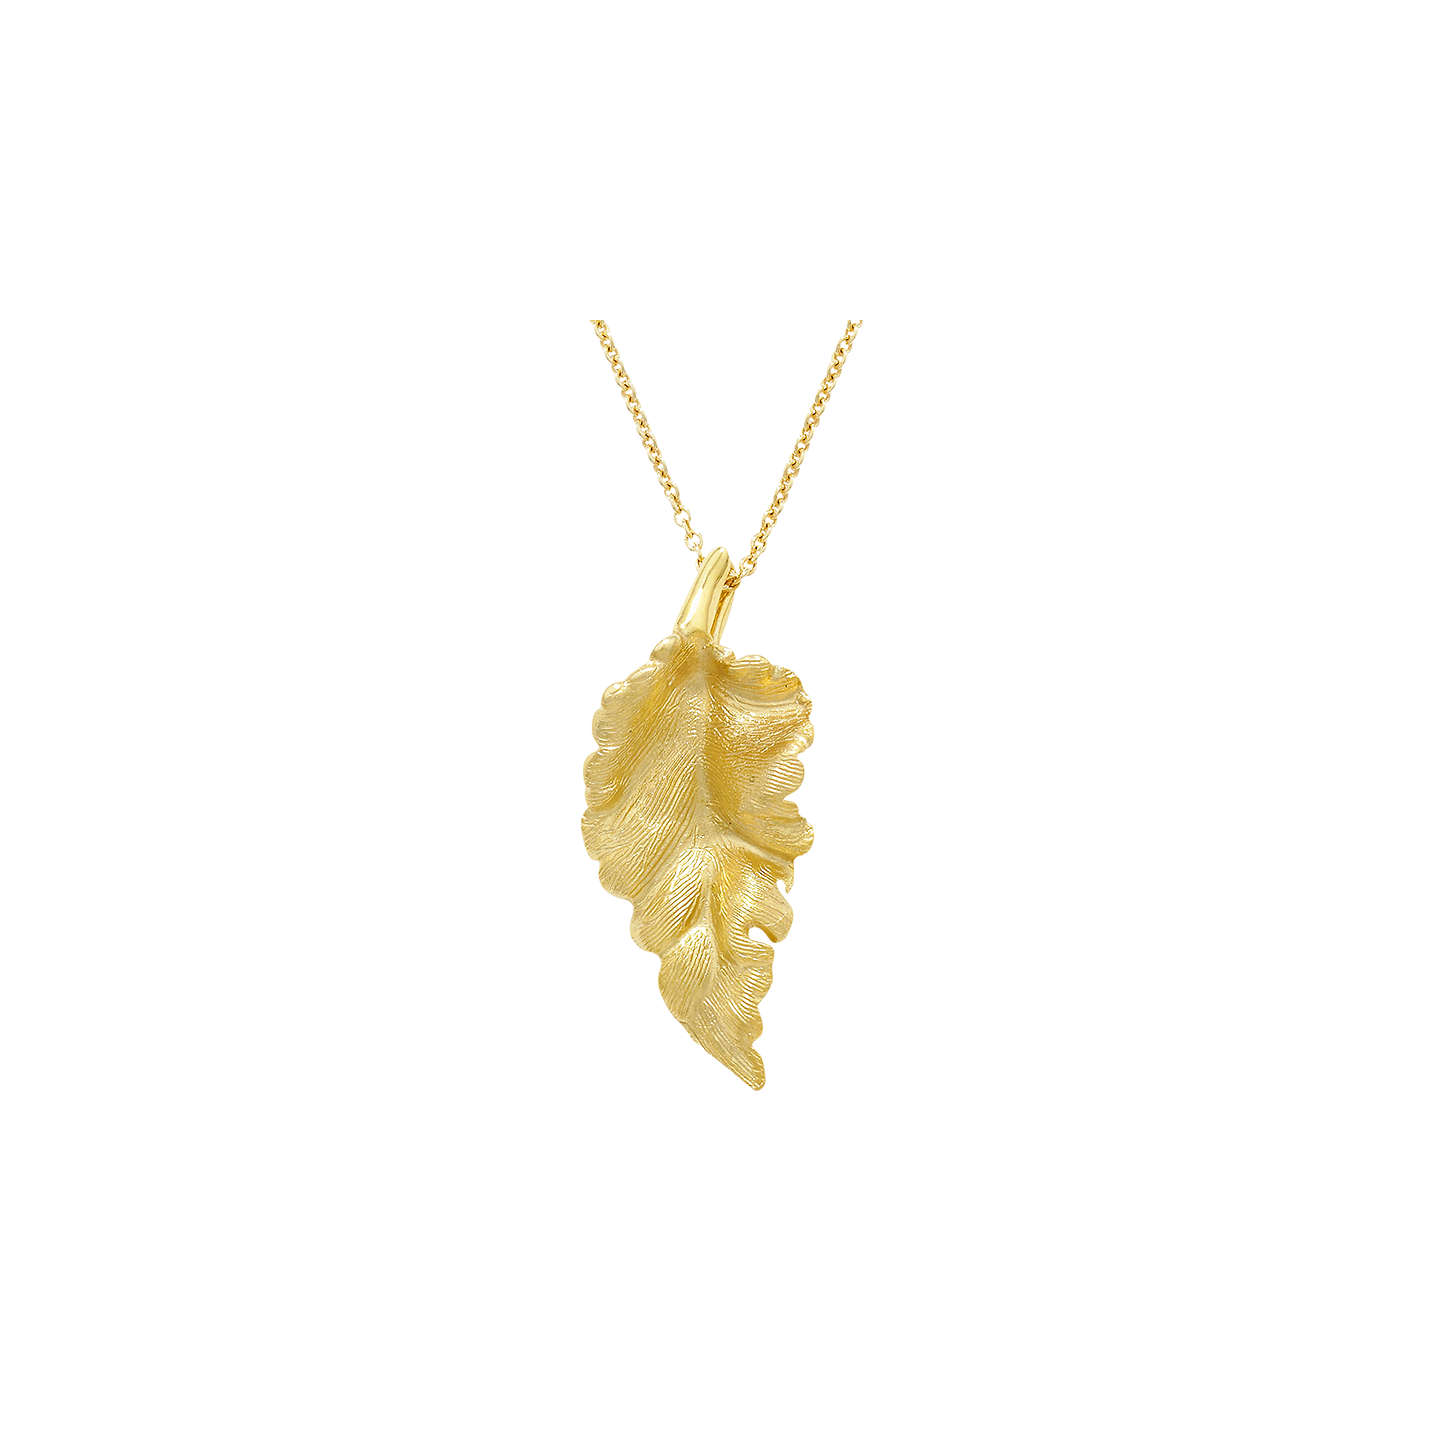 jewellery mcdonough pendant gold product sloane lauren kiki white leaf